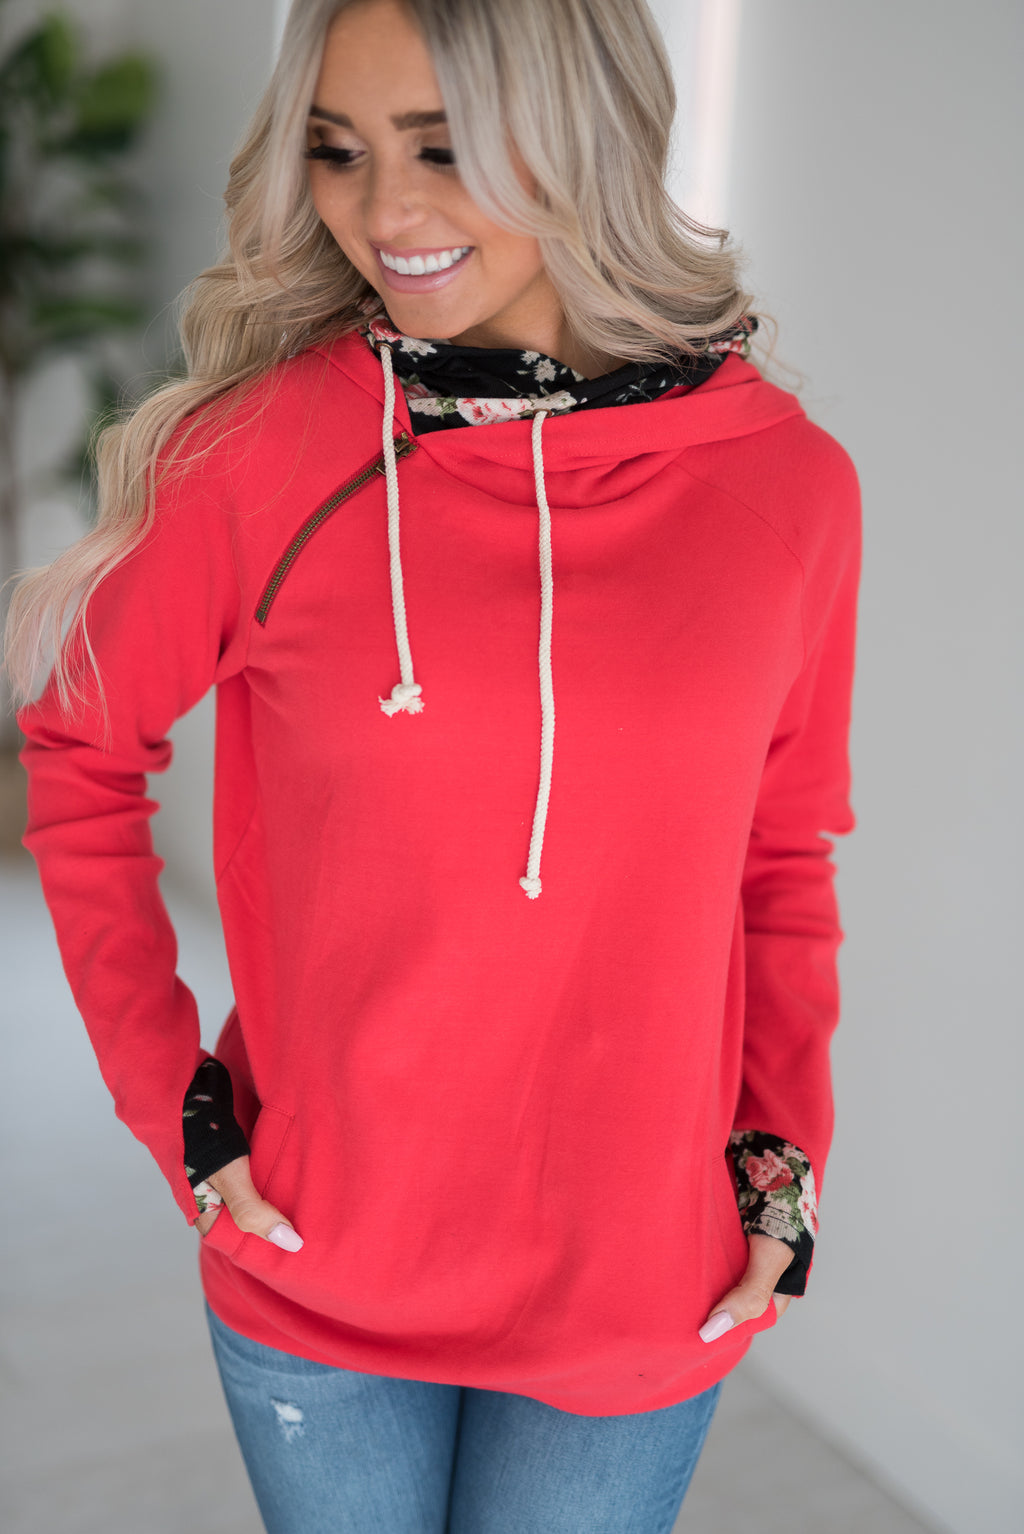 DoubleHood™ Sweatshirt - Bright Red Floral Accent